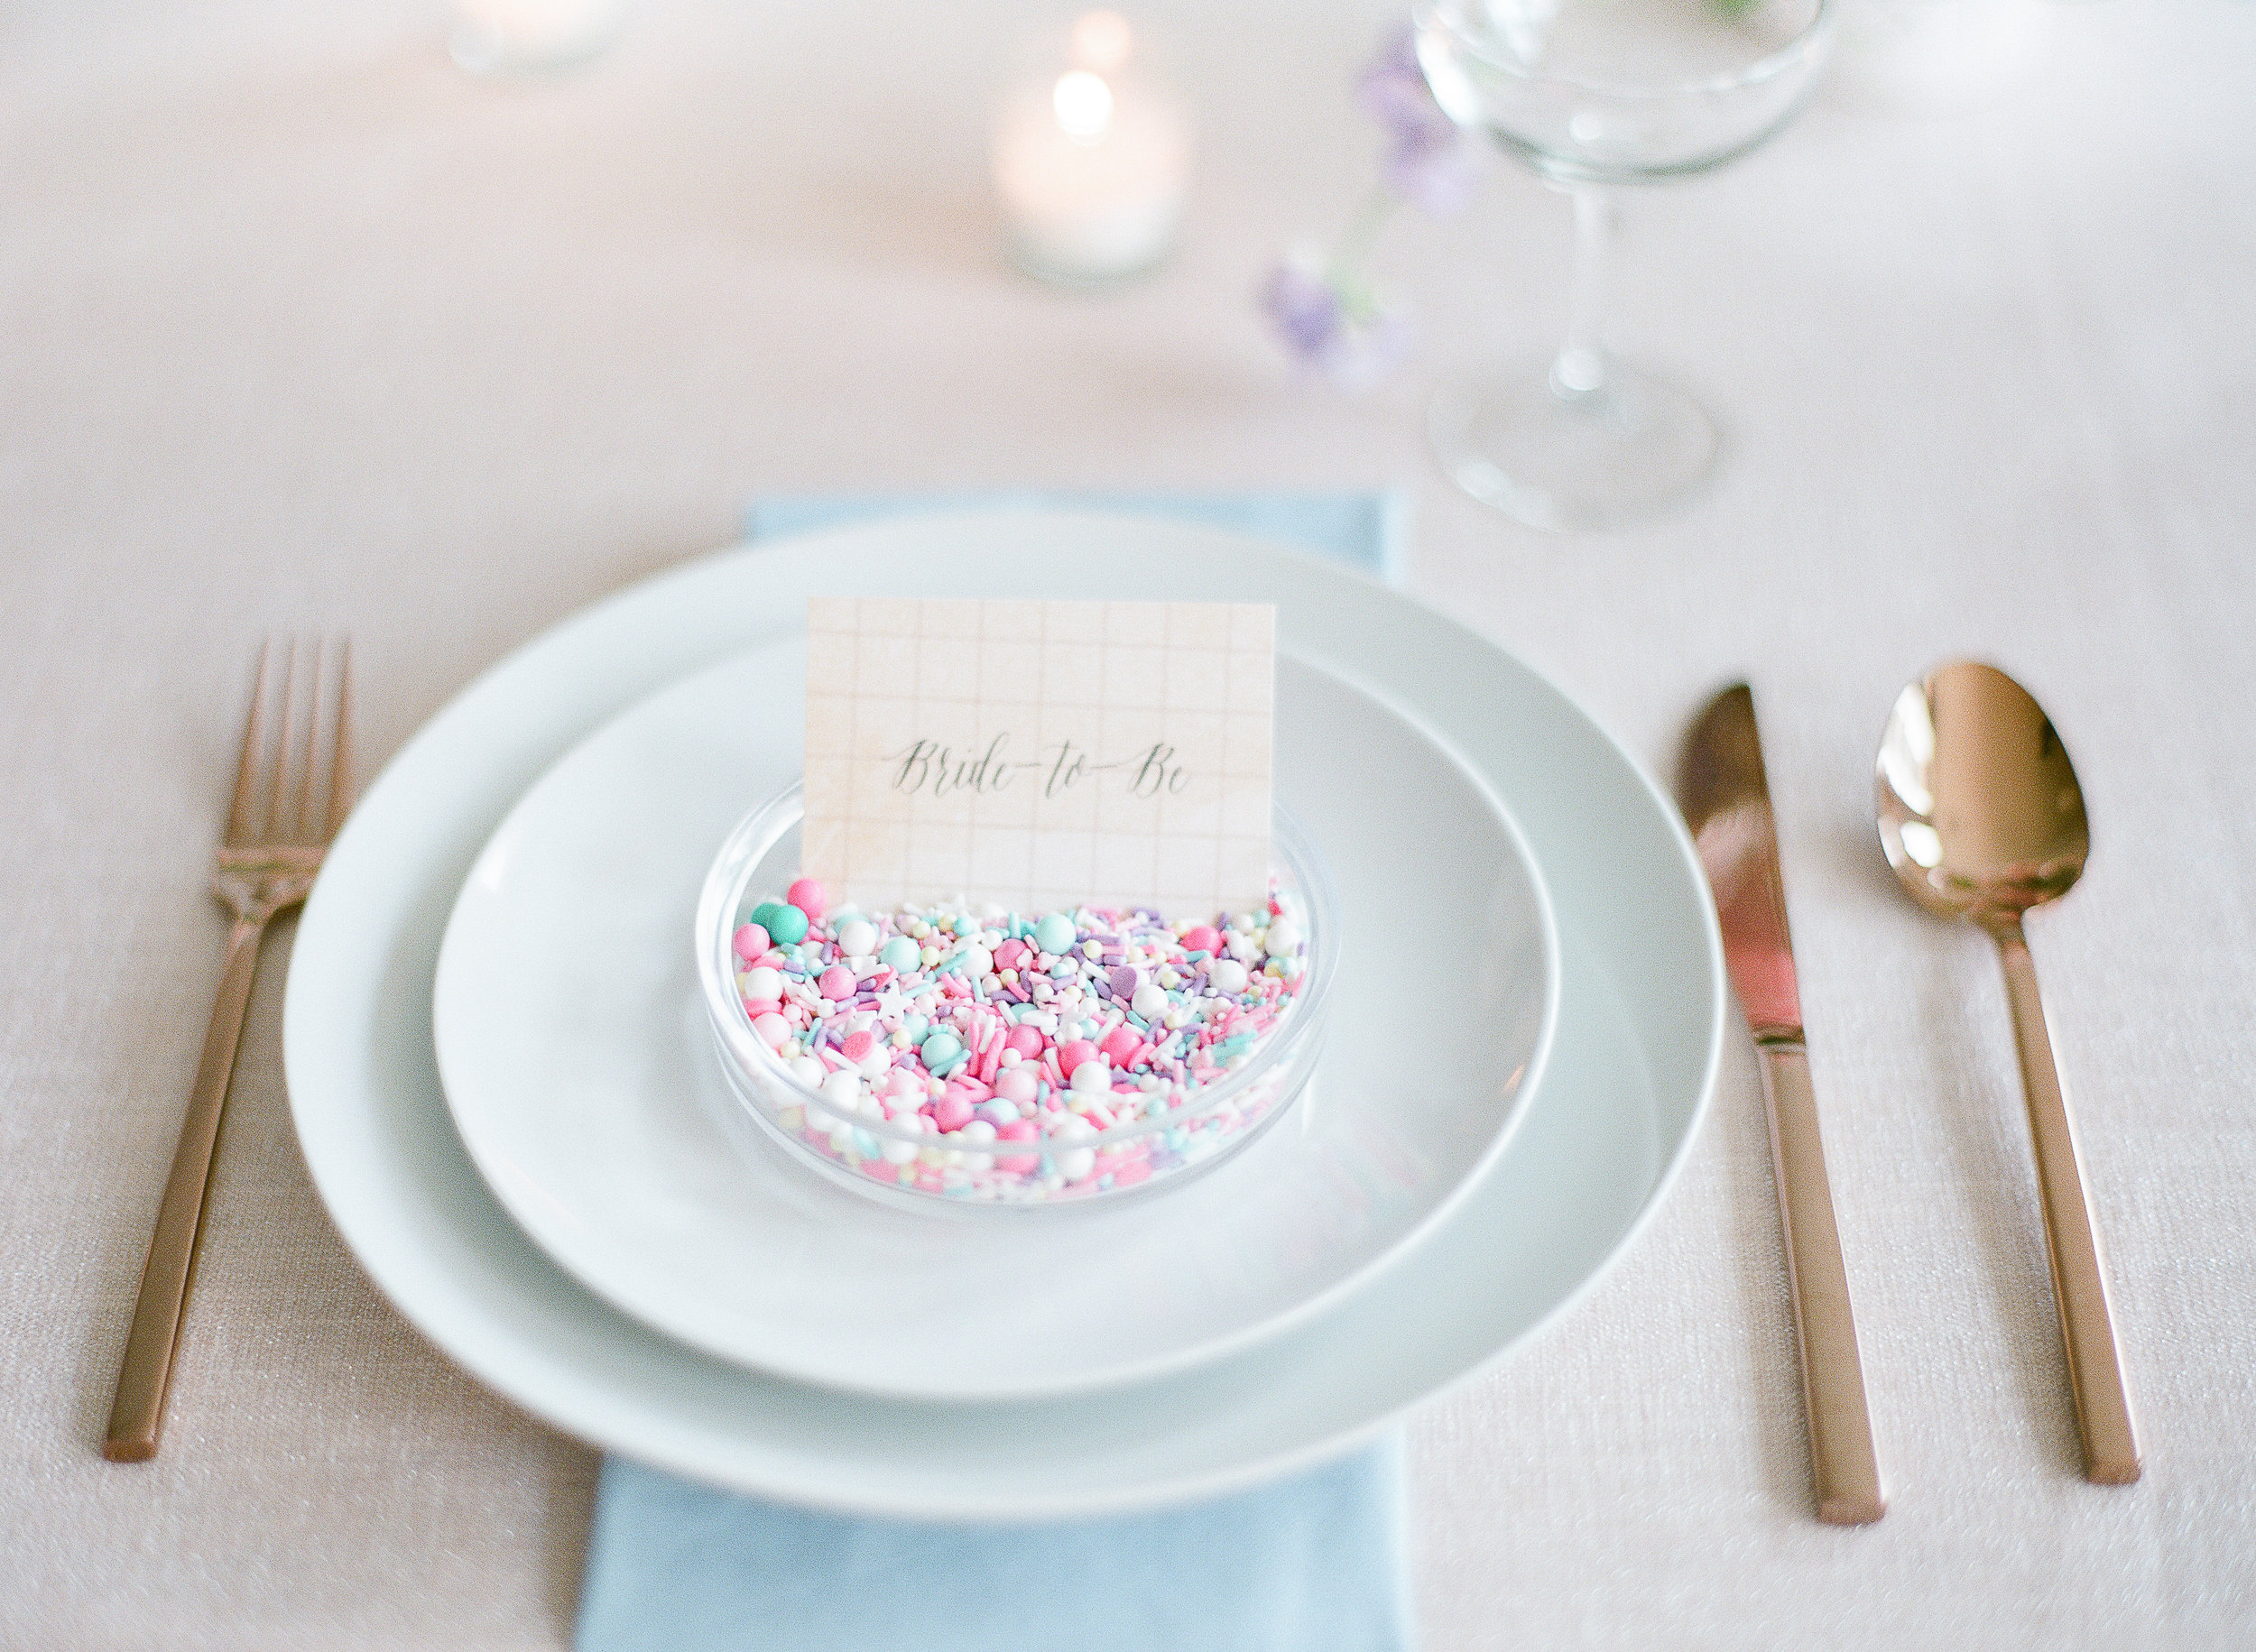 ruffled - Wedding Planning Tips for a Stress-Free Wedding Day